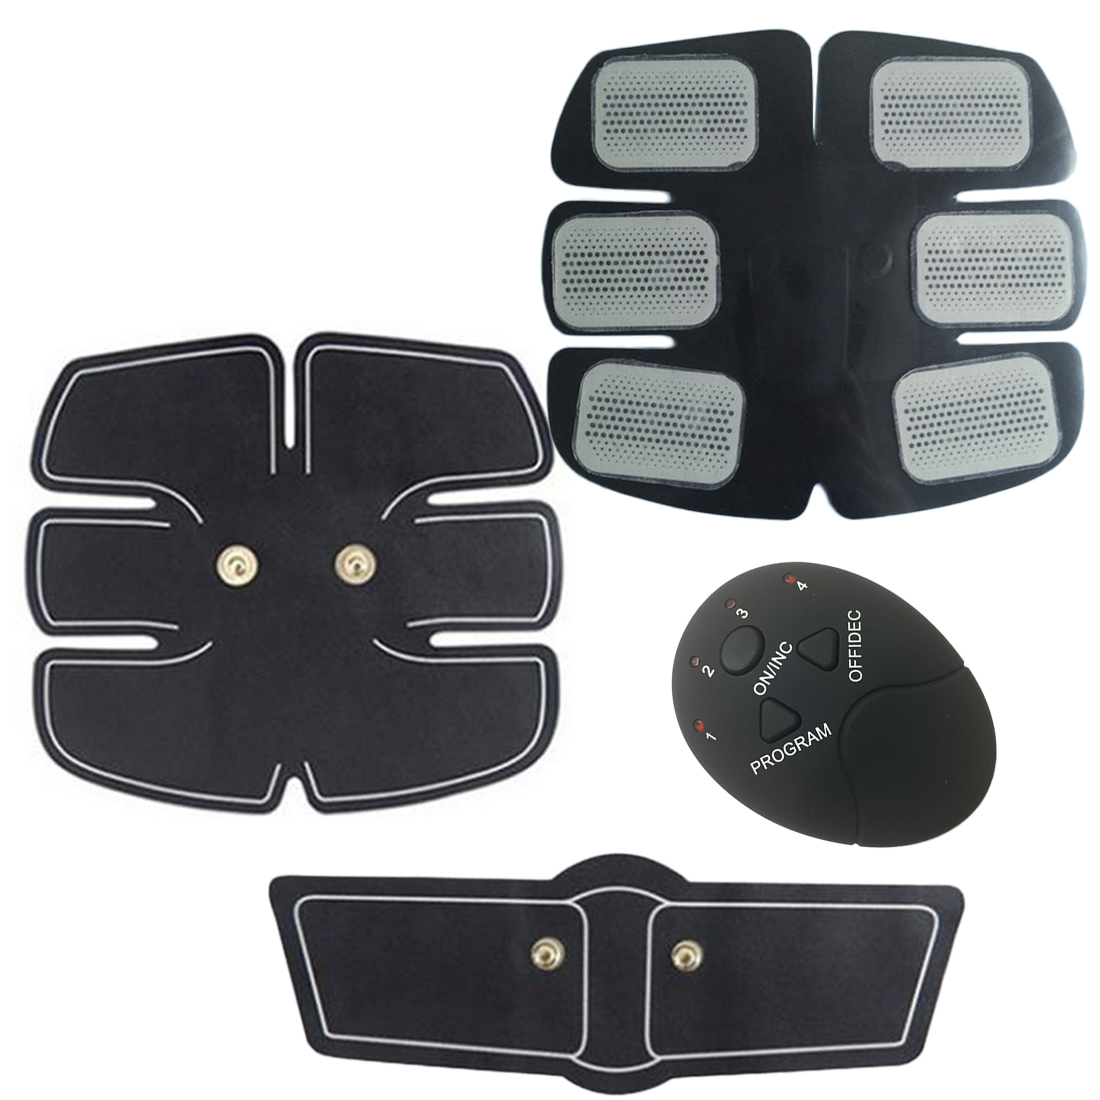 Useful Hot Healthy Smart Abdominal Muscle Trainer Sticker Gym Abs Muscle Stimulator Pad Fitness Arm Sticker Electric Pulse Stickers Skin Care Tools